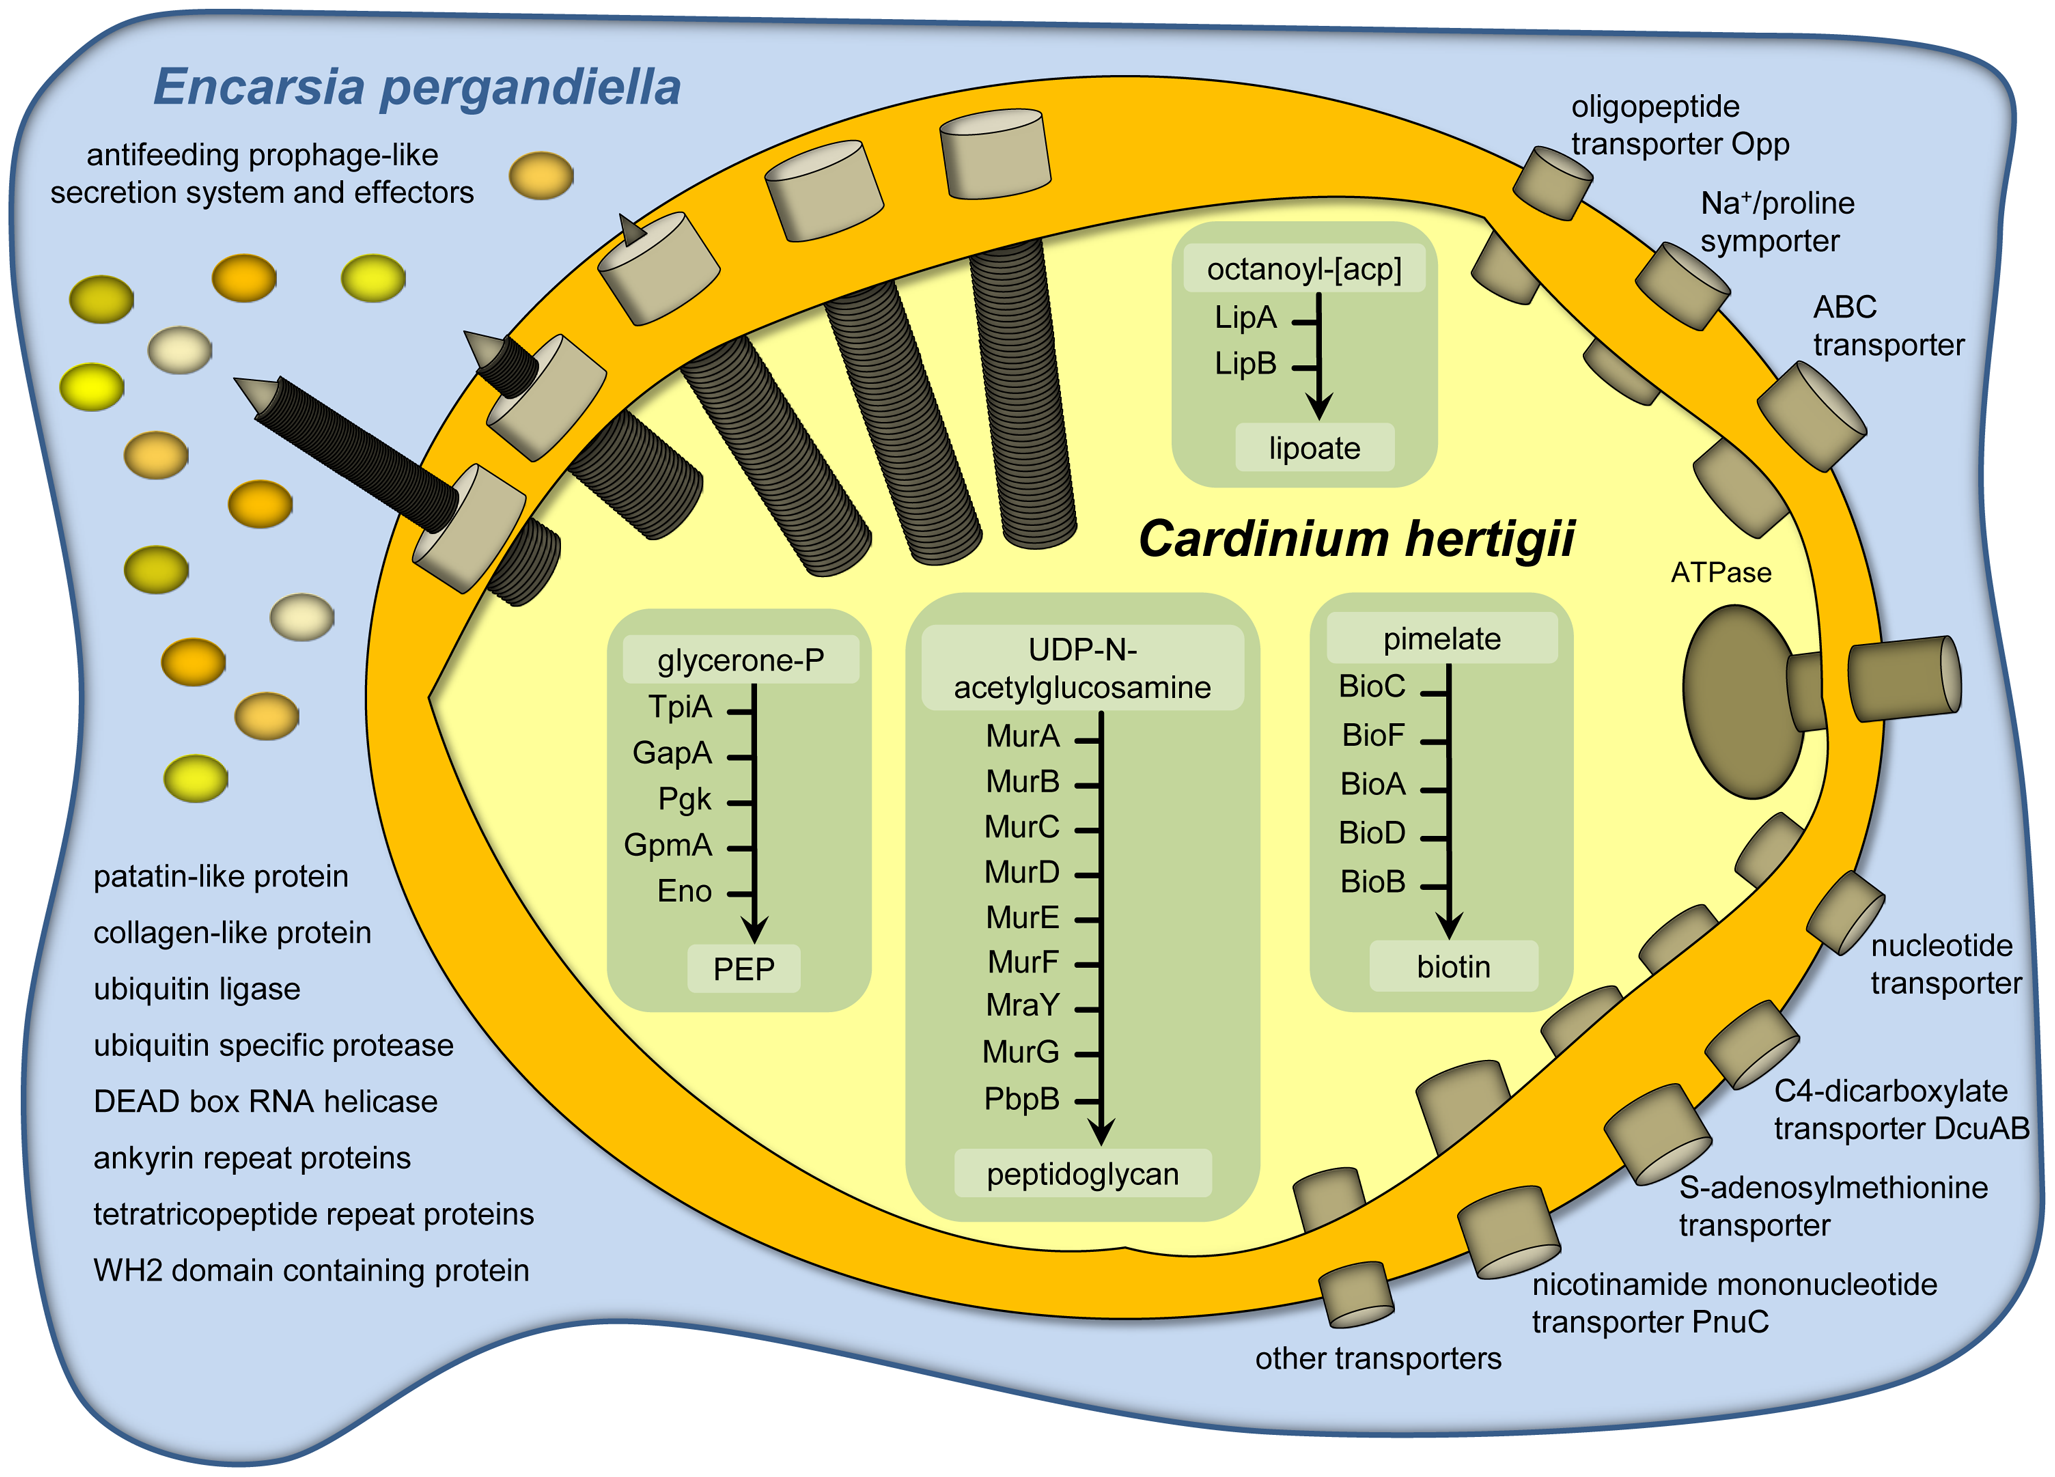 Metabolism, transport capabilities, and host cell interaction of <i>Cardinium hertigii c</i>Eper1.